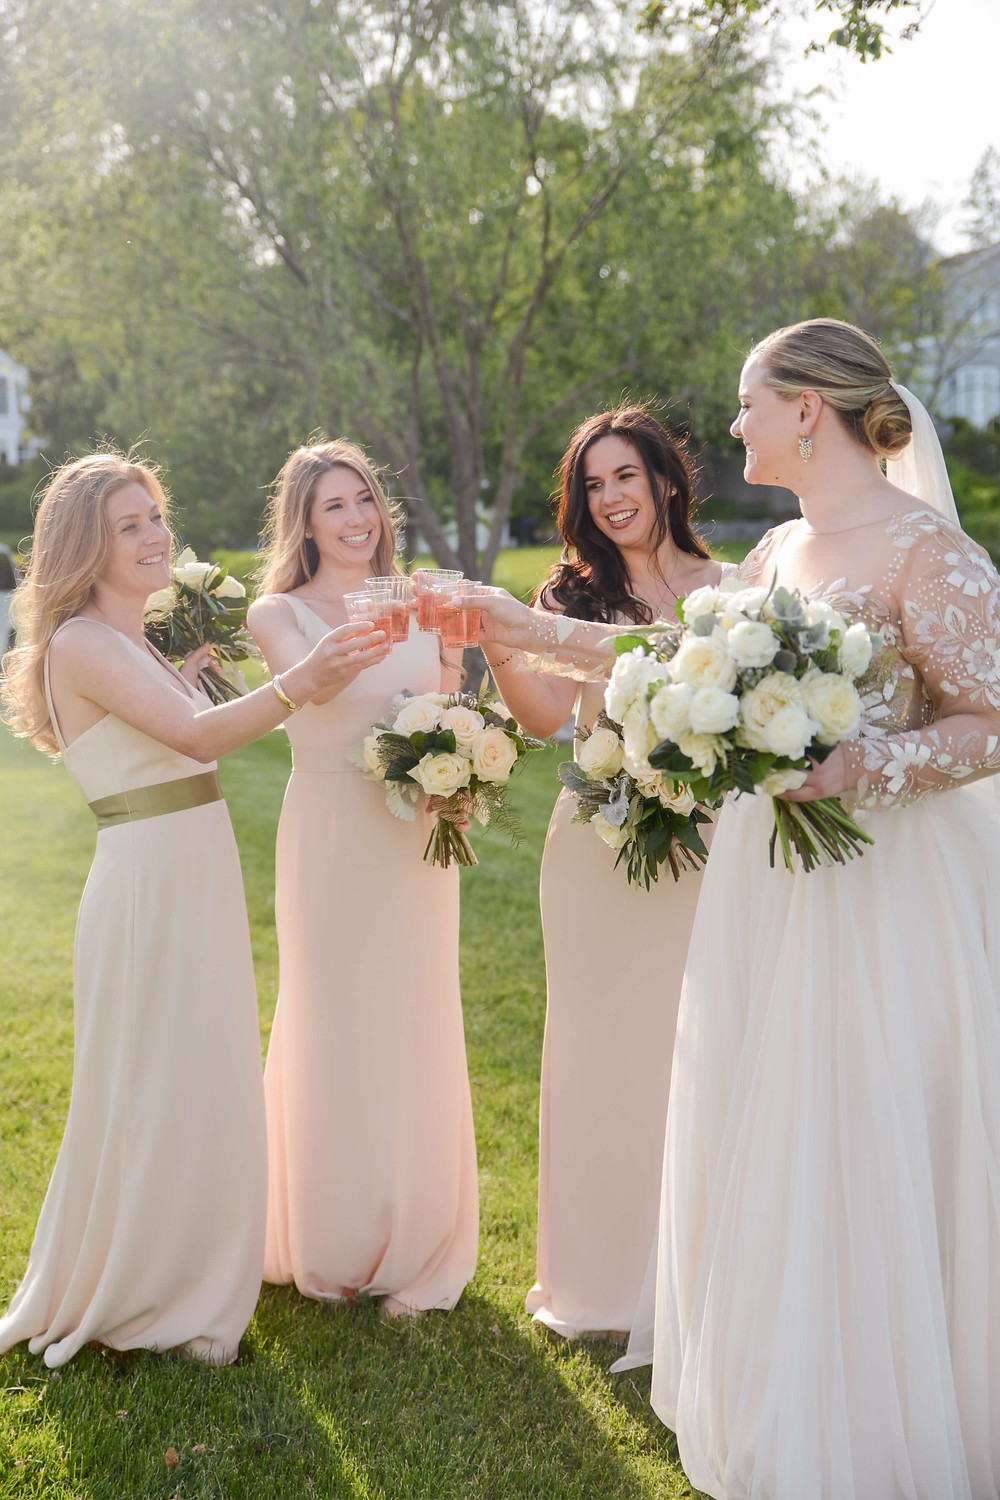 Bride and Bridesmaid's Rose Bouquets